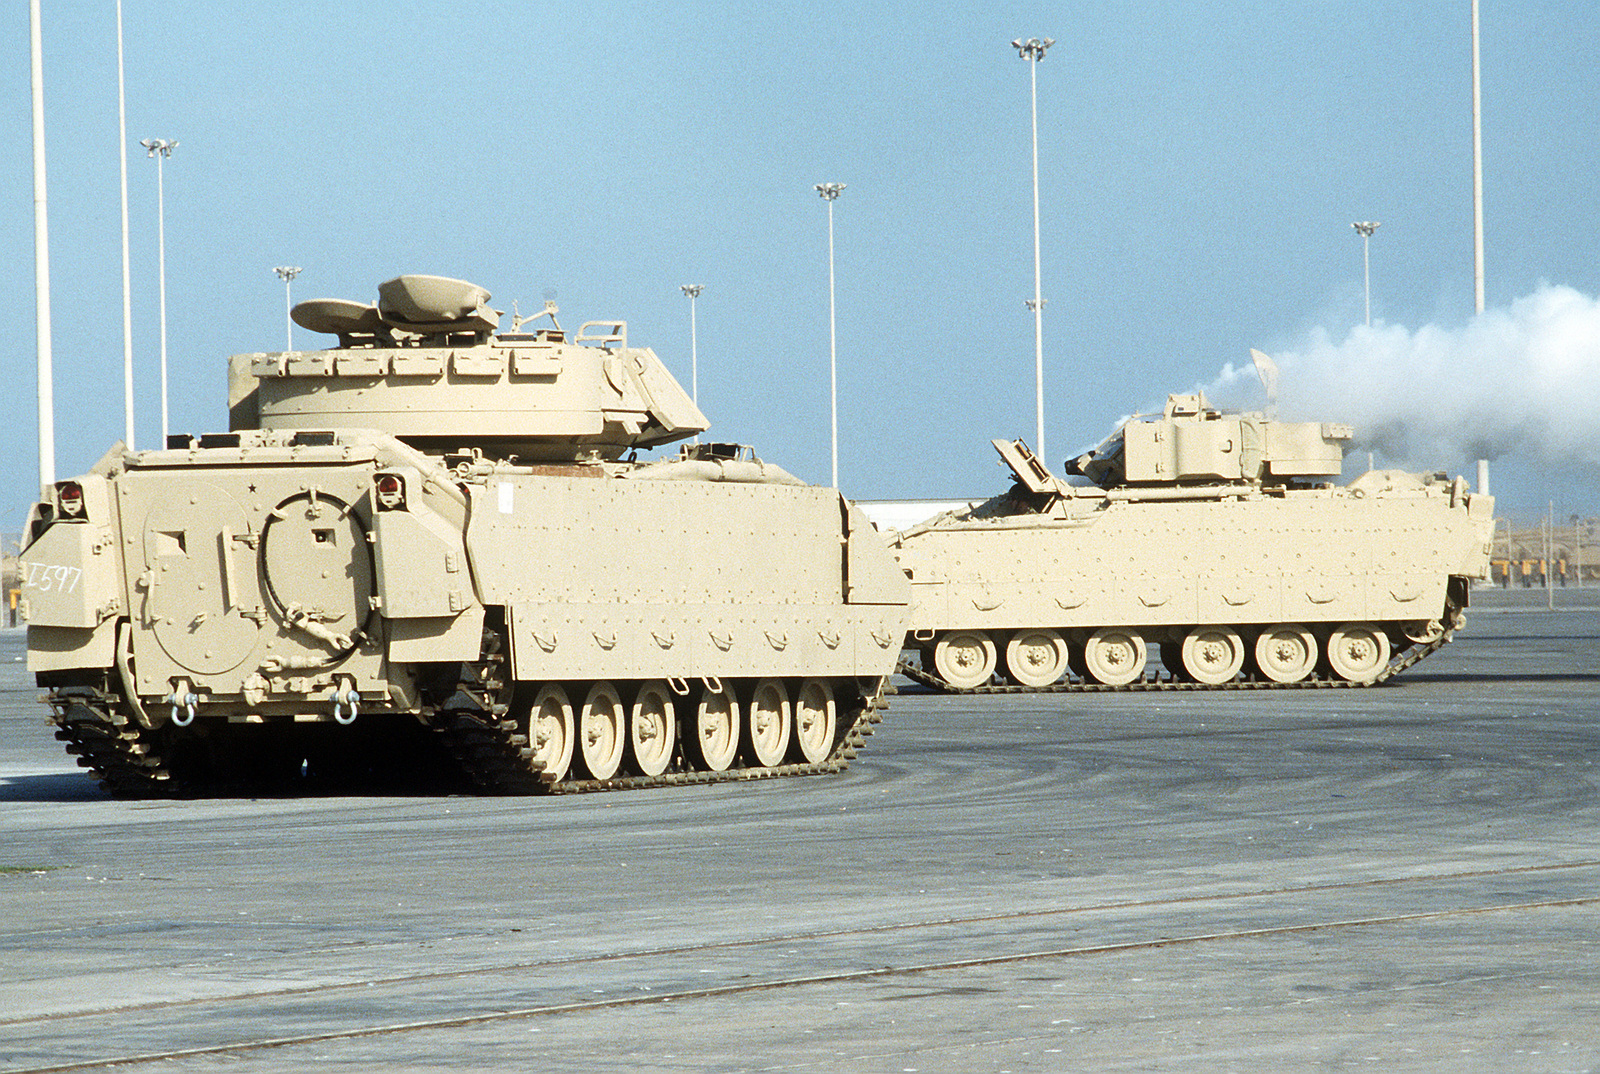 M-2A2 Bradley infantry fighting vehicles stand in a holding area prior to being issued to the 1ST Cavalry Division during Operation Desert Shield